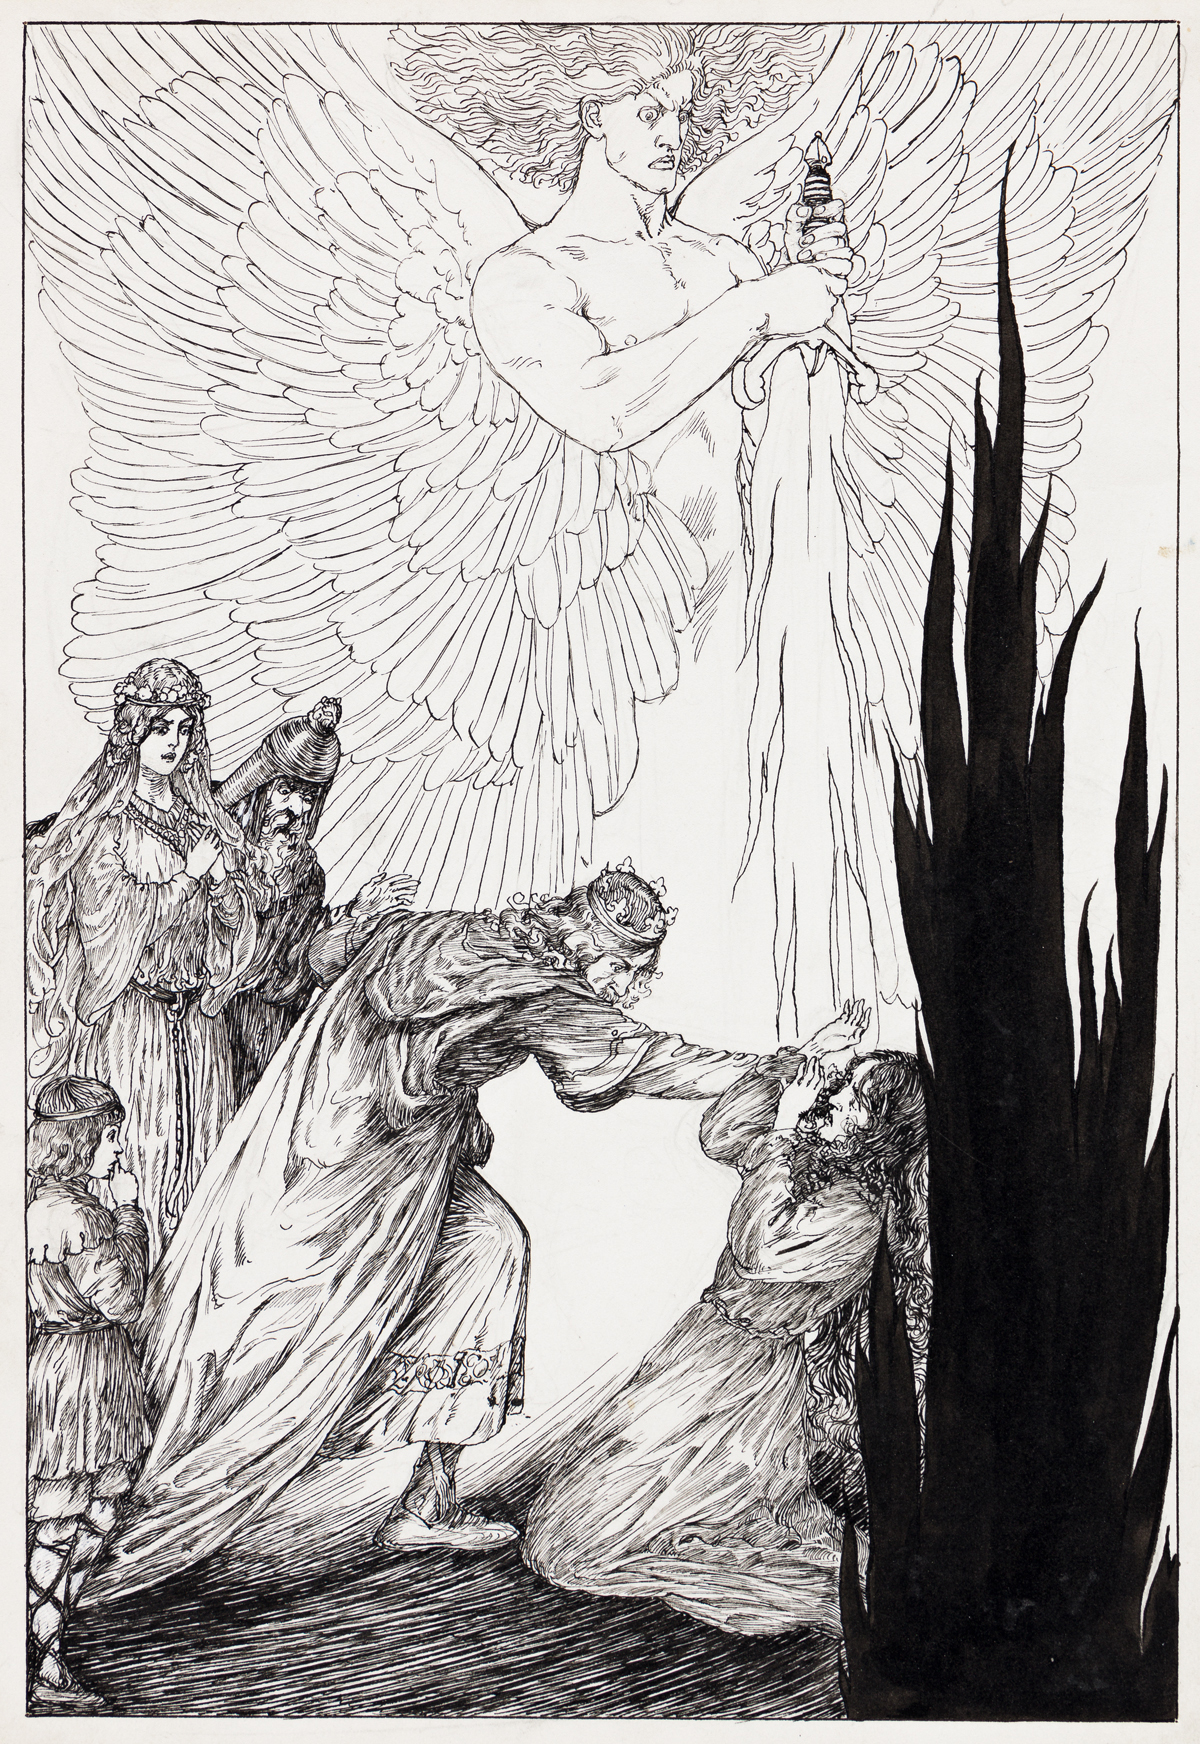 WILLY POGÁNY (1882-1955) And suddenly in wrath the King hath seizd the dark witch-wife and hurld her from his path.